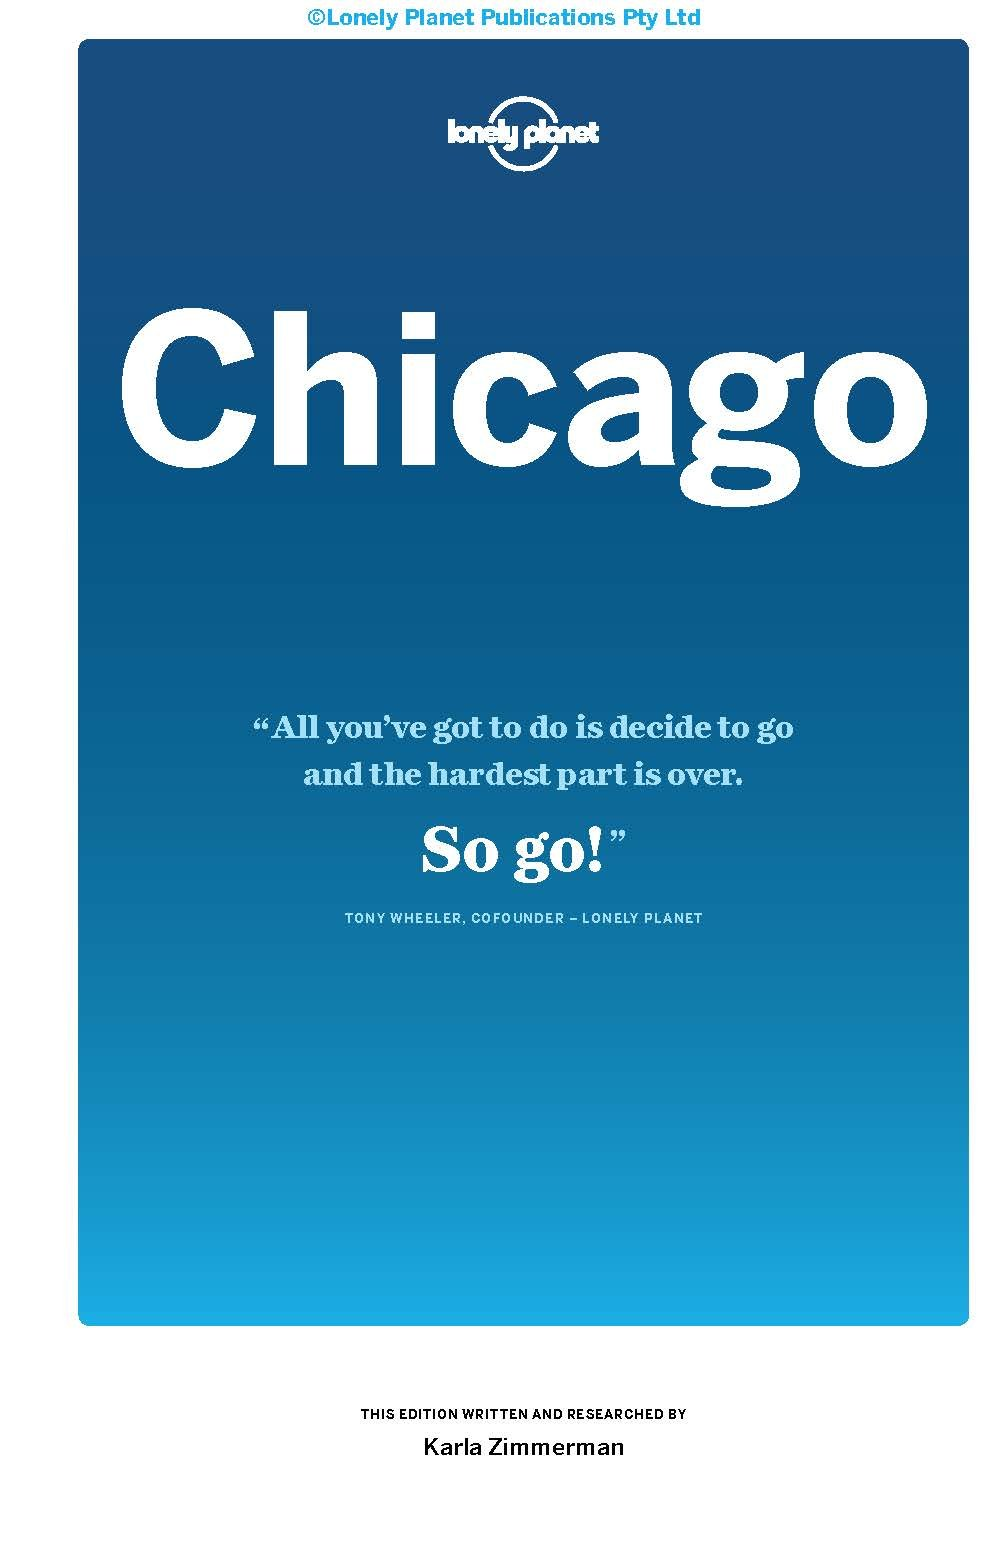 Lonely Planet Chicago (Travel Guide): Lonely Planet, Karla Zimmerman: 9781786572271: Amazon.com: Books